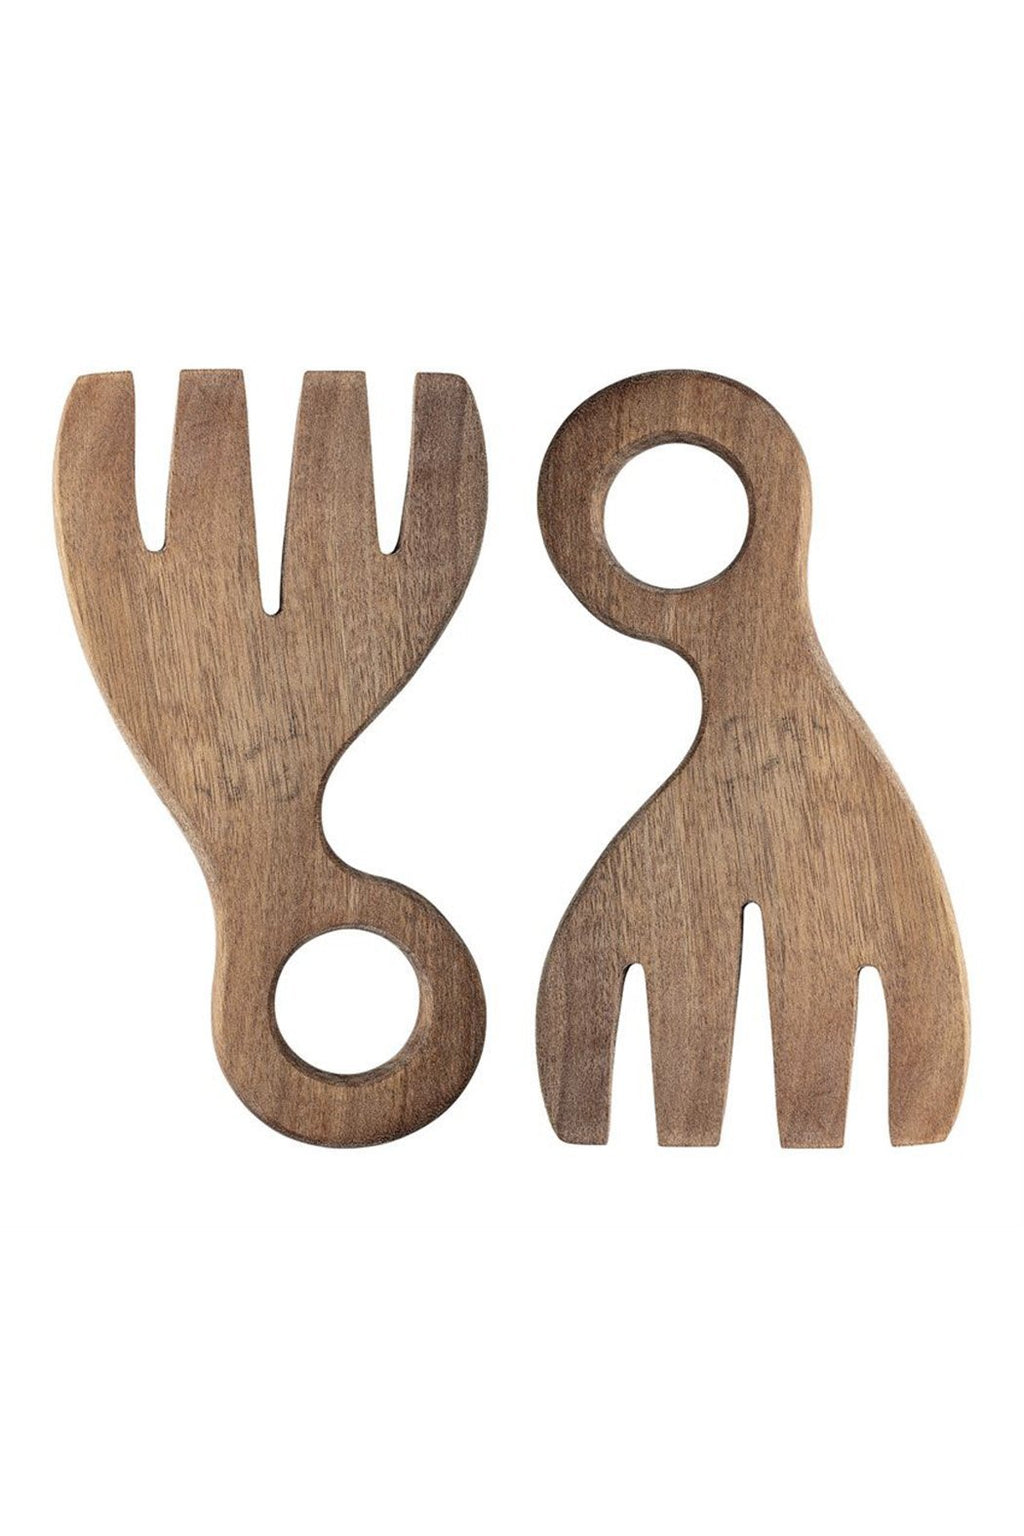 Bloomingville Acacia Wood Salad Servers